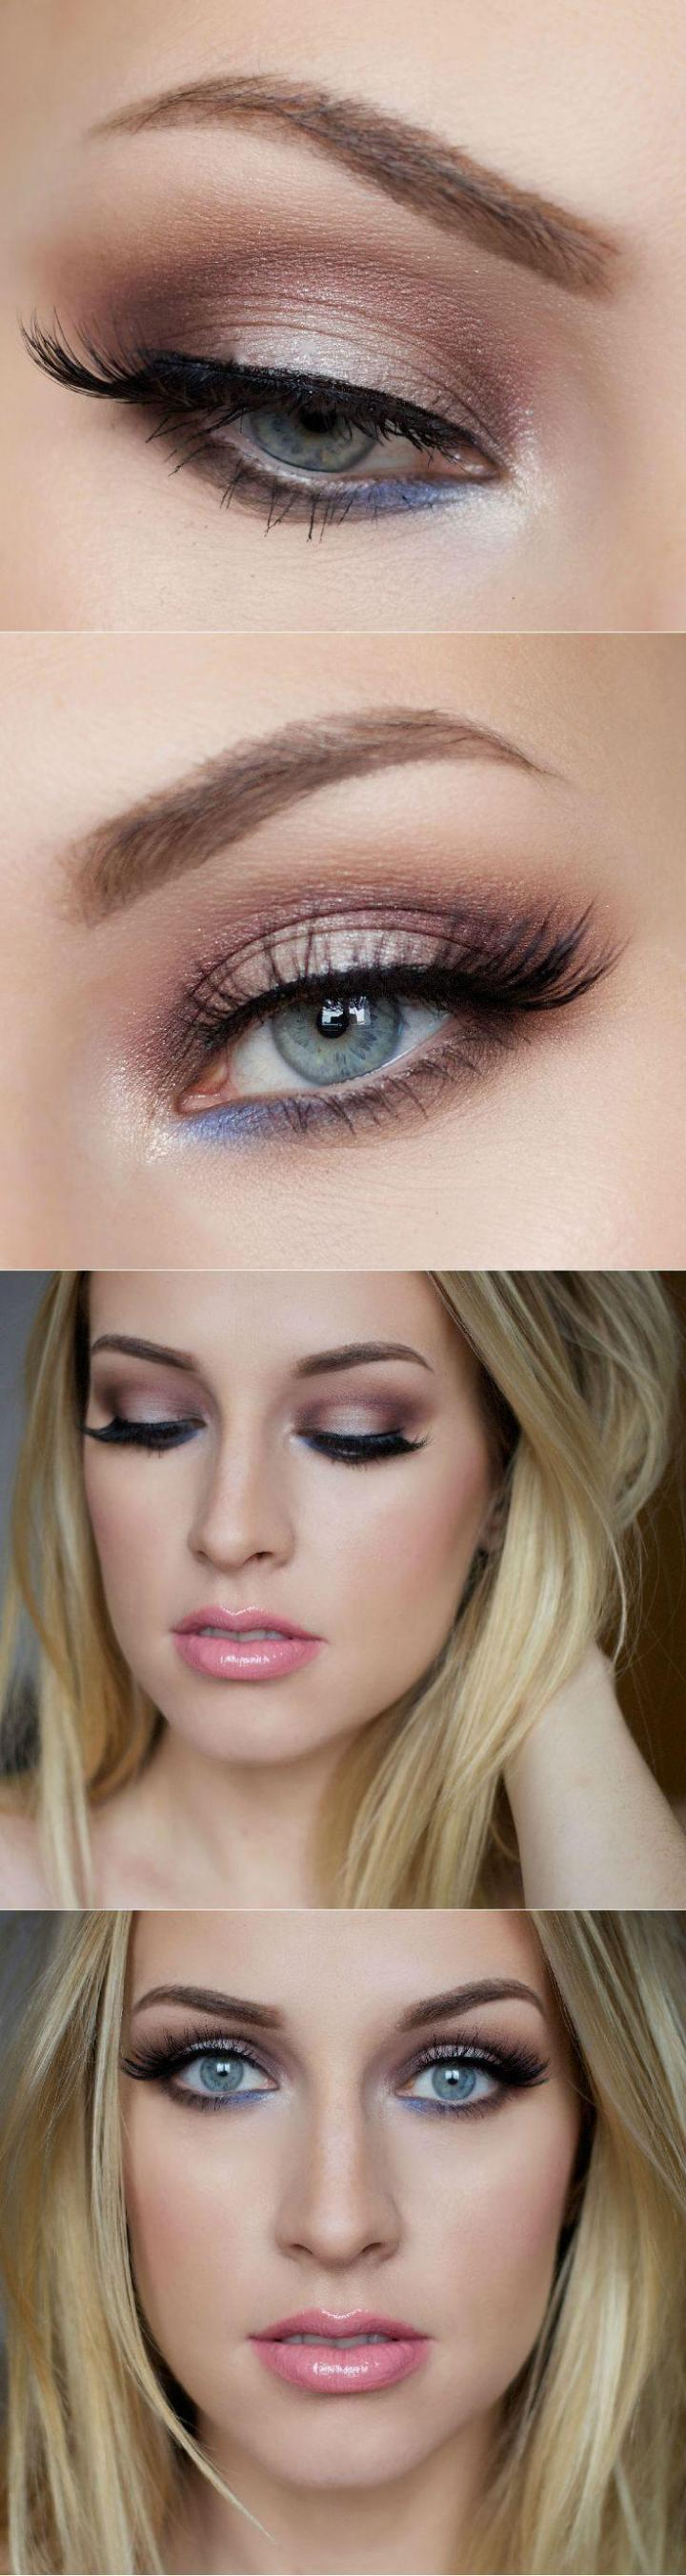 eye makeup for fair skin and blue eyes | amatmakeup.co